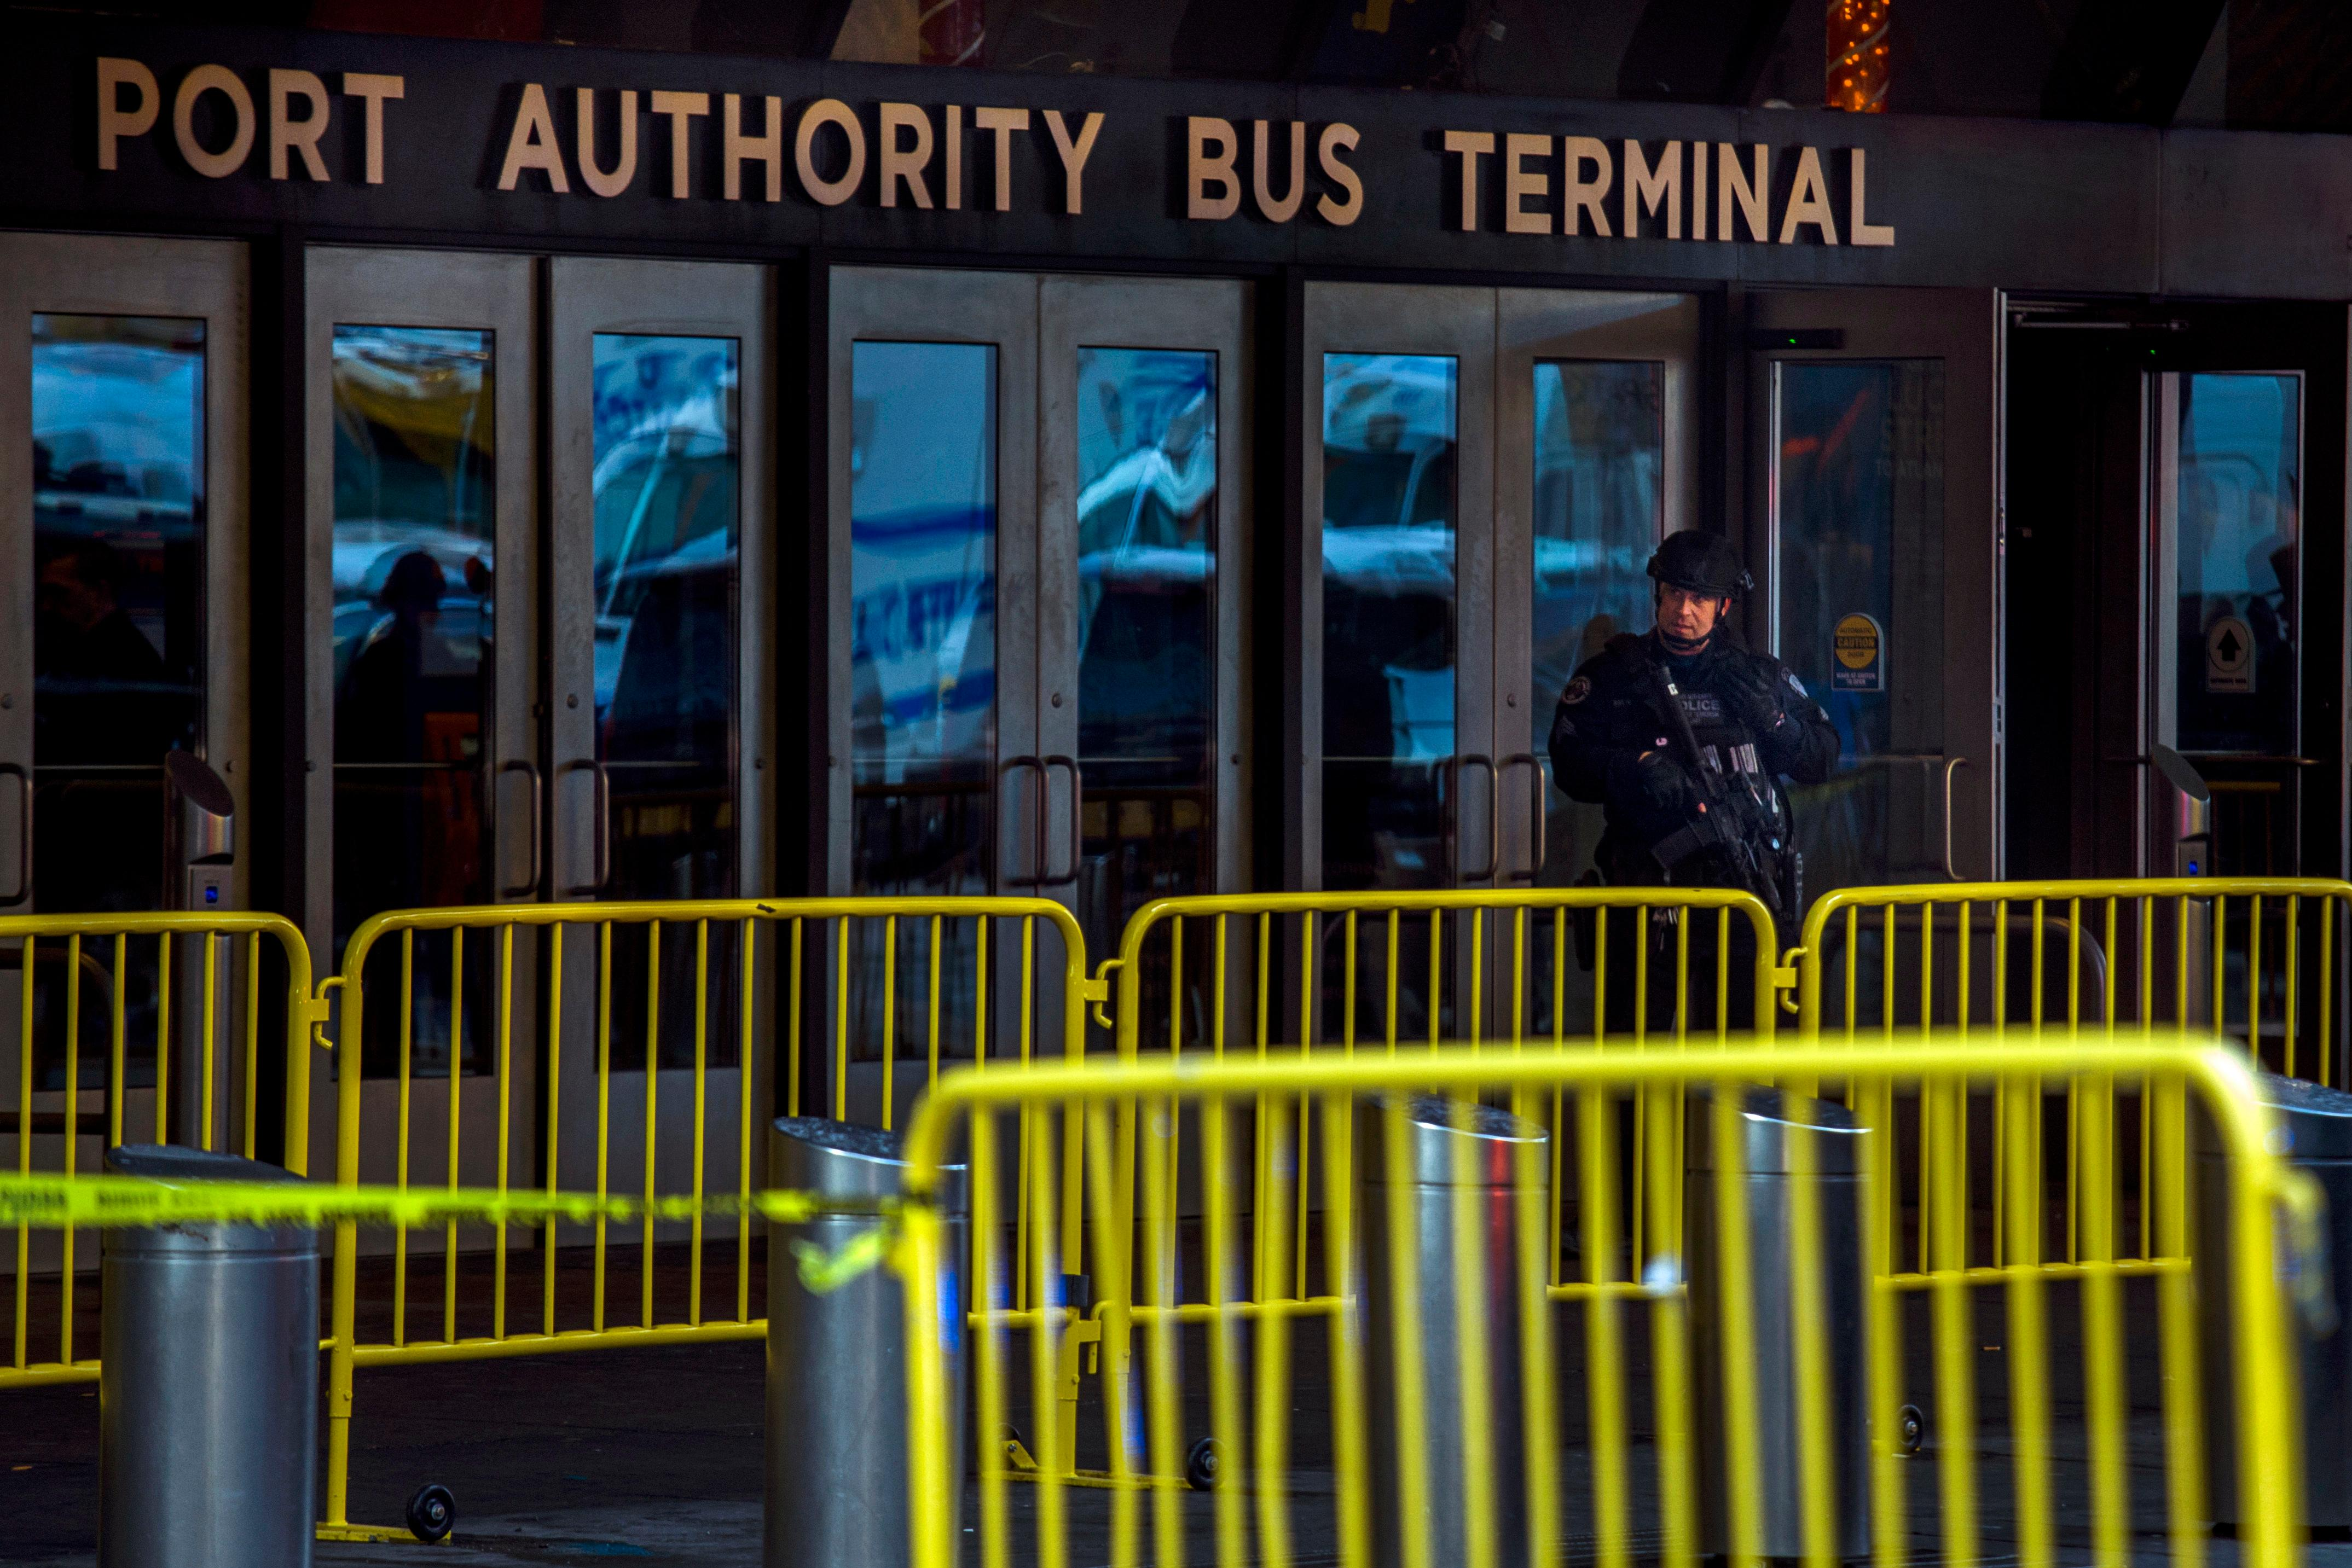 A police officer stands guard in front of Port Authority Bus Terminal as law enforcement respond to a report of an explosion near Times Square on Monday, Dec. 11, 2017, in New York. (AP Photo/Andres Kudacki)